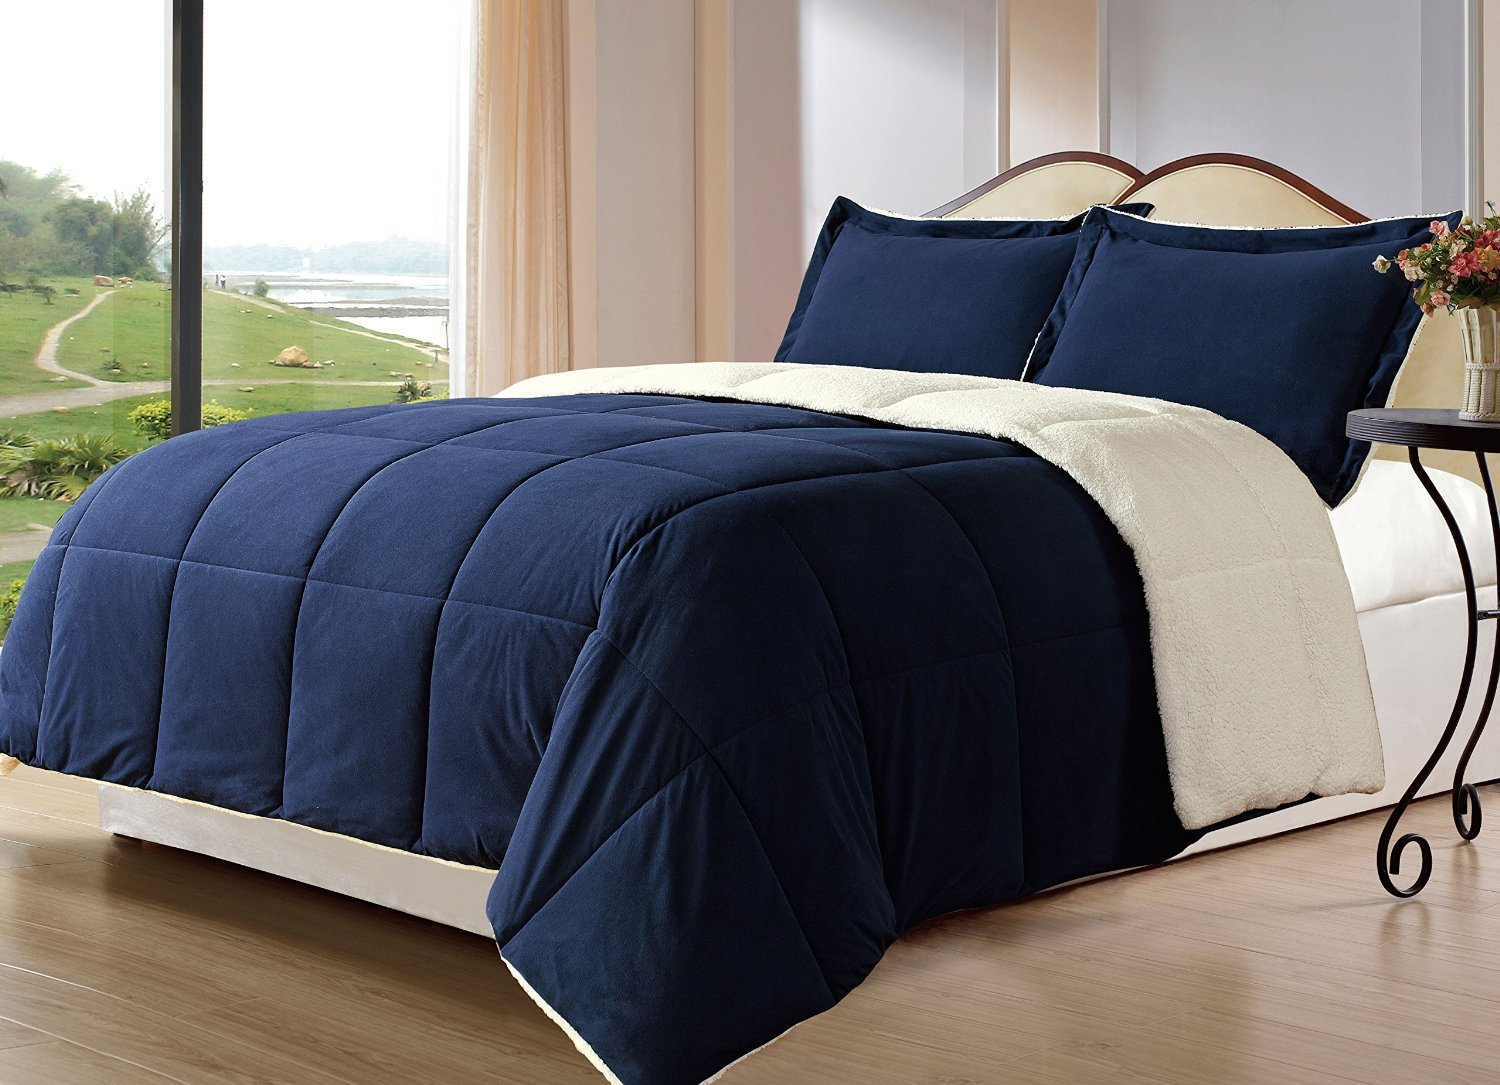 Reversible comforter sets ease bedding with style - Bedroom sheets and comforter sets ...